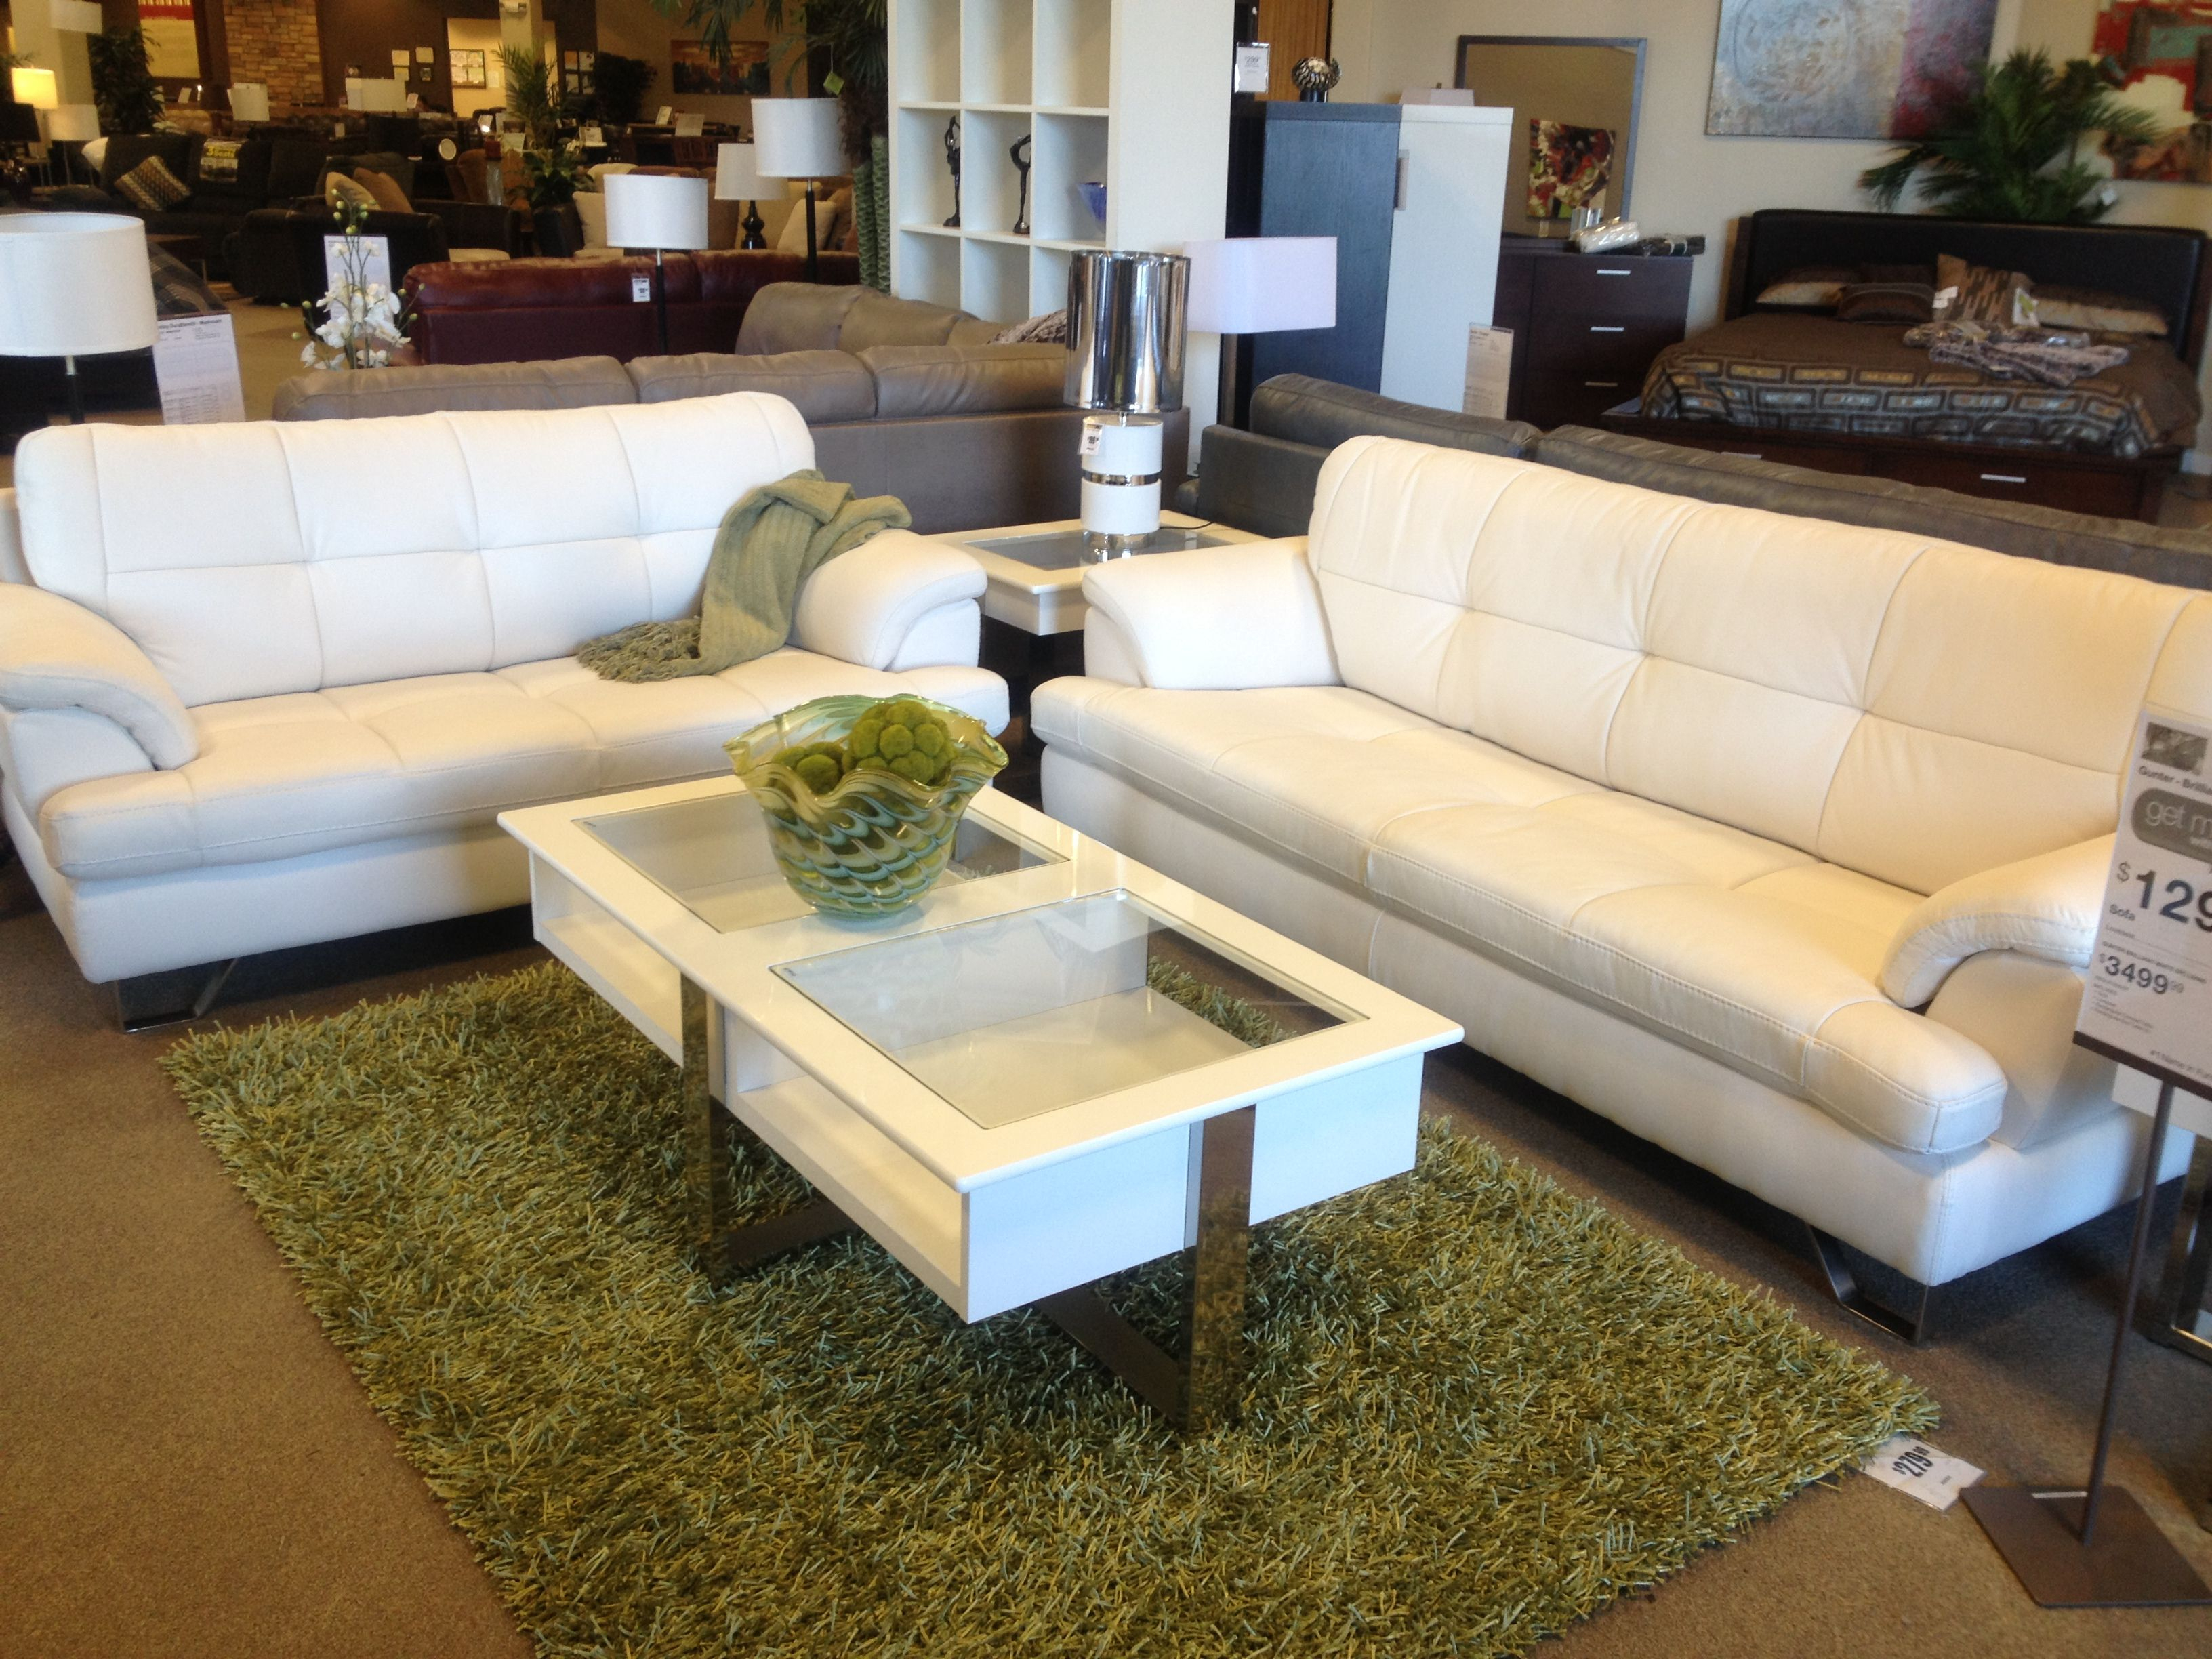 White Leather Couch White Coffee Table Love Leather throughout size 3264 X 2448